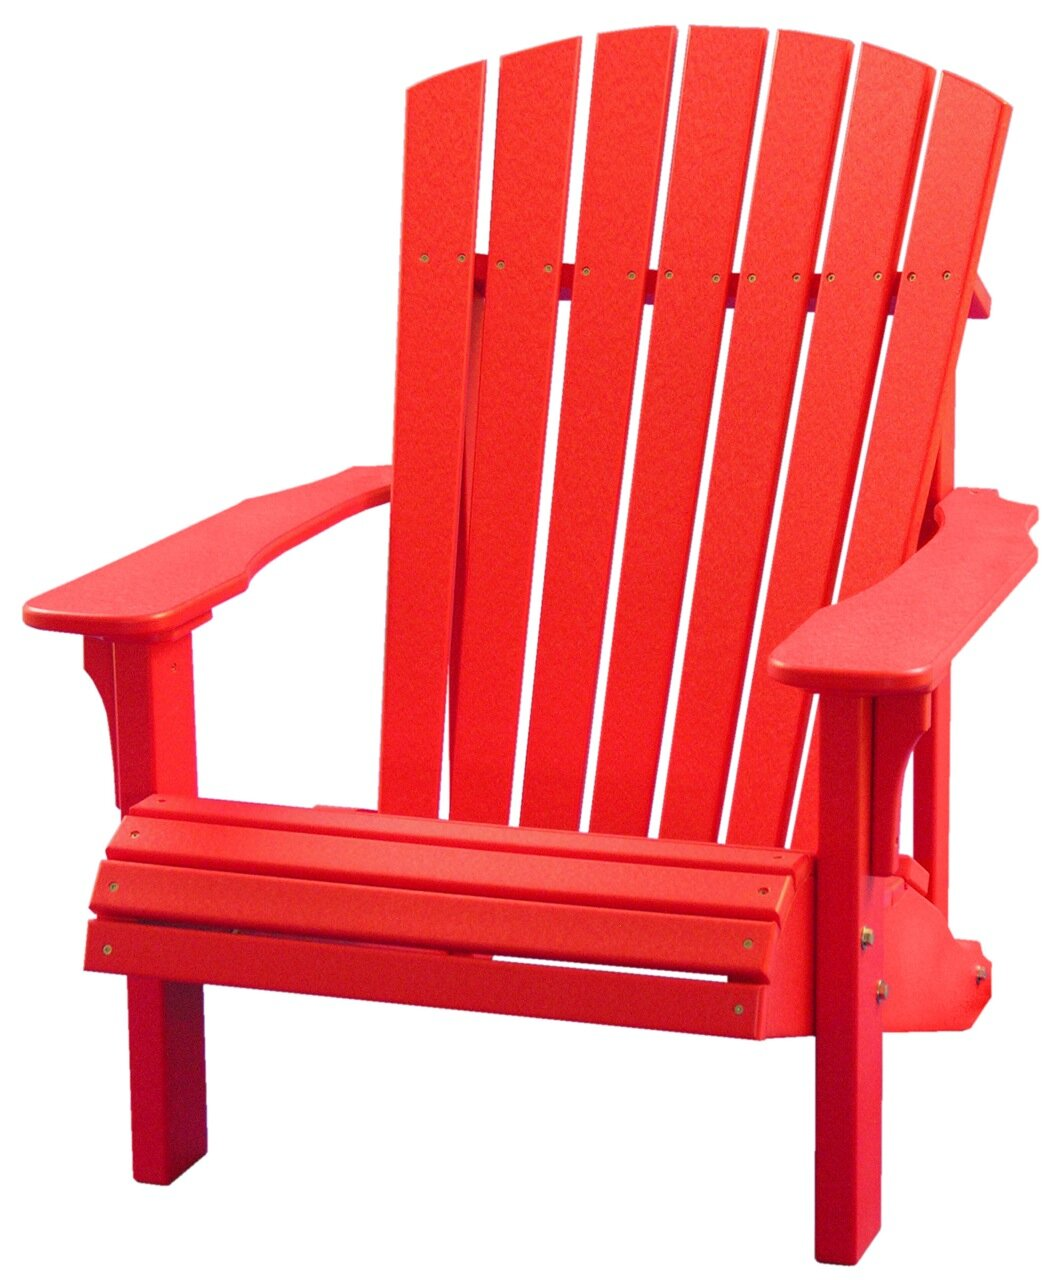 Cheap Adirondack Chairs Adams Adirondack Chair Colors In Plastic Colored Adirondack Chairs